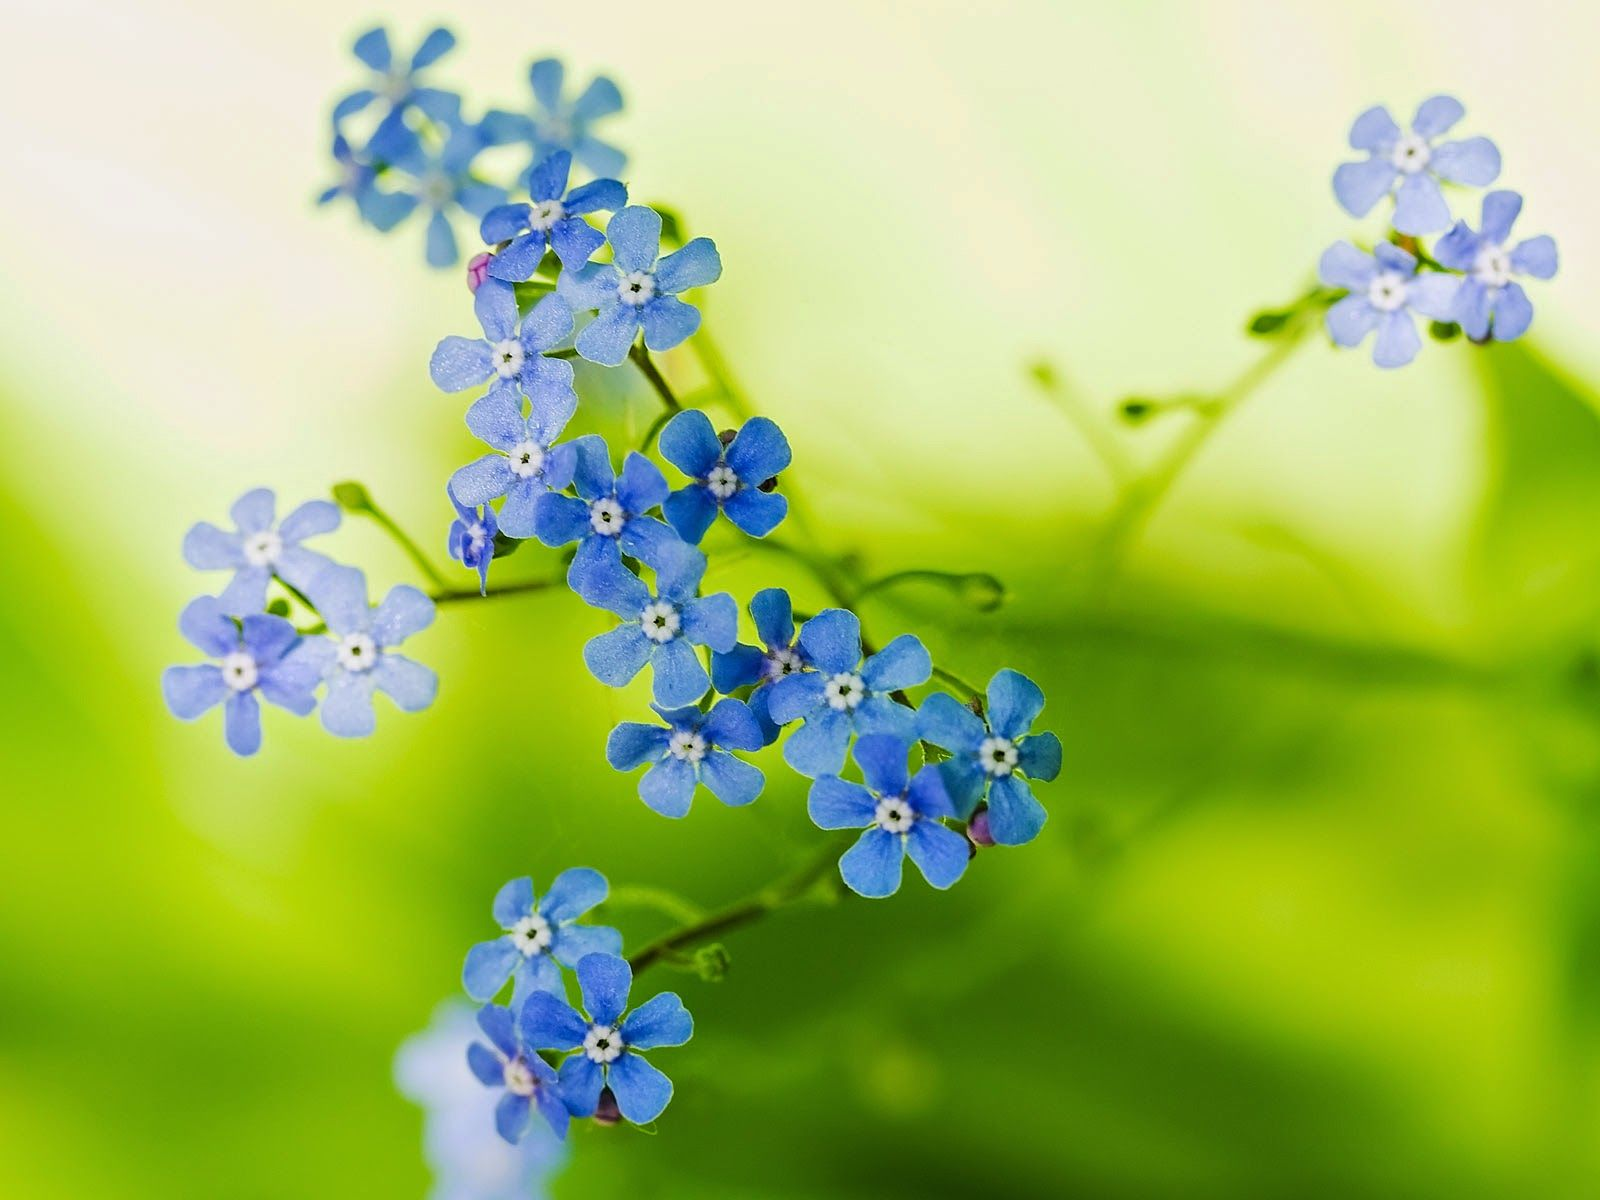 Picture of green beautiful flowers hd pictures hd pictures picture of green beautiful flowers hd pictures izmirmasajfo